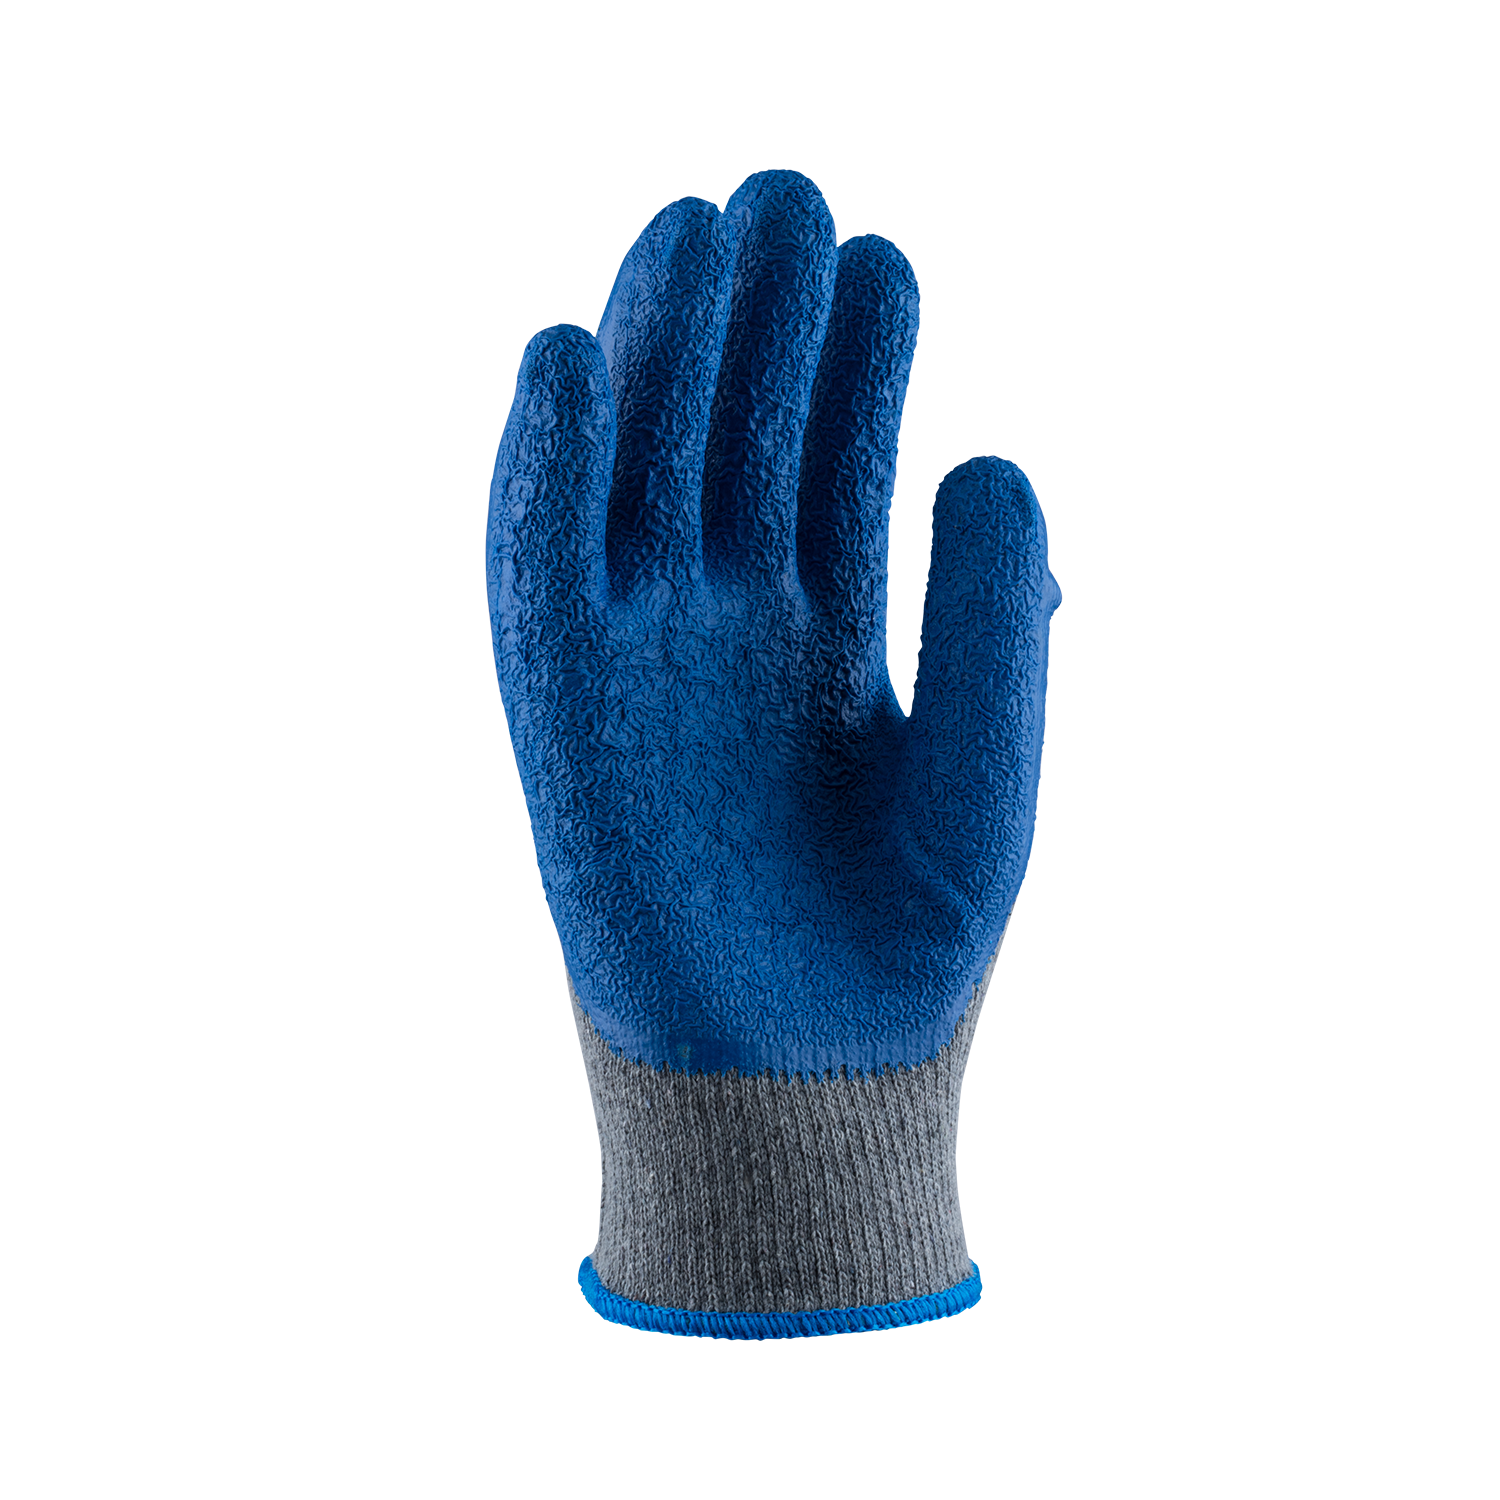 Buy Midas Safety Splendor Grip Coated Gloves Large online at